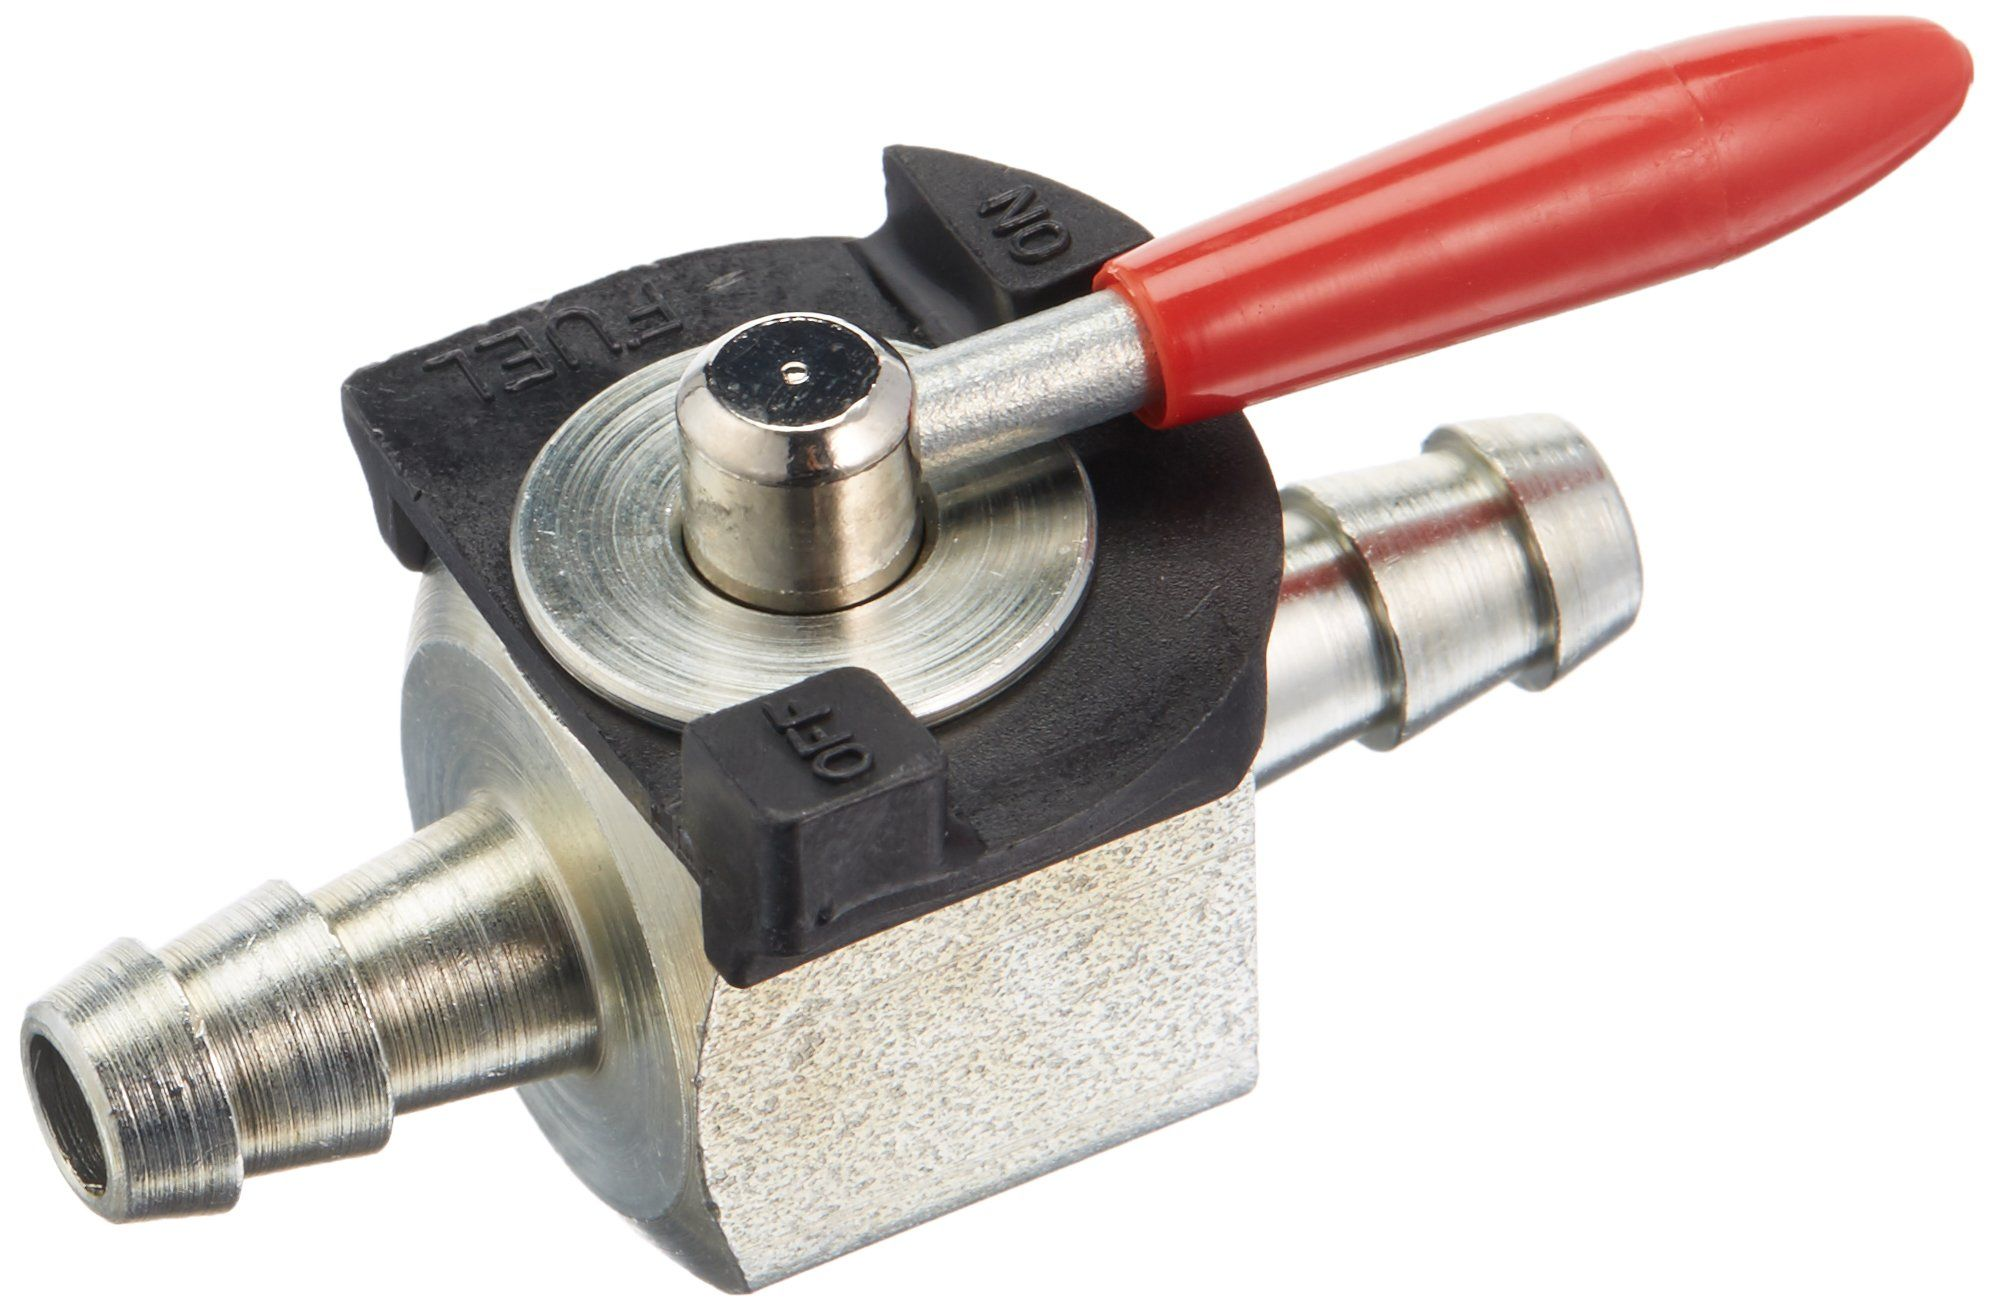 Oregon 07403 Shutoff Valve For 1 4 Fuel Line Lawn Mower Replacement Part Check Out This Great Product It Is An Affiliate Lawn Mower Tractor Mower Lawn Mower